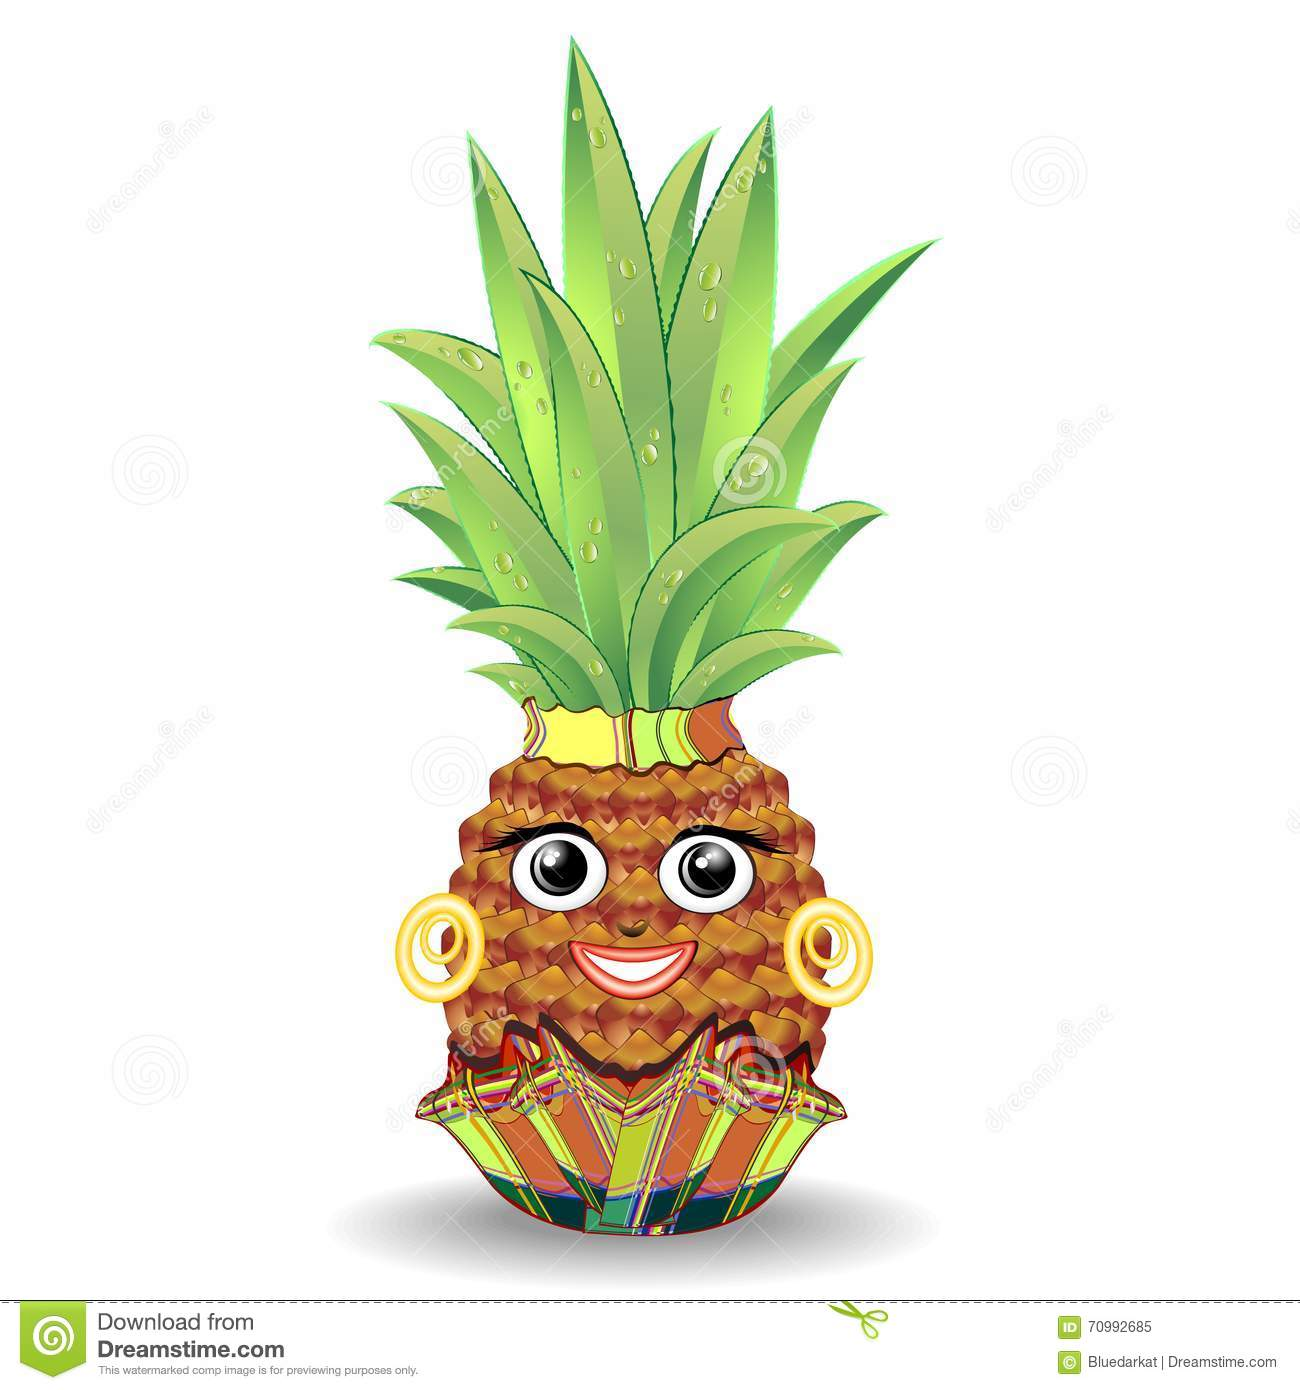 Pineapple Happy Face Stock Vector - Image: 70992685